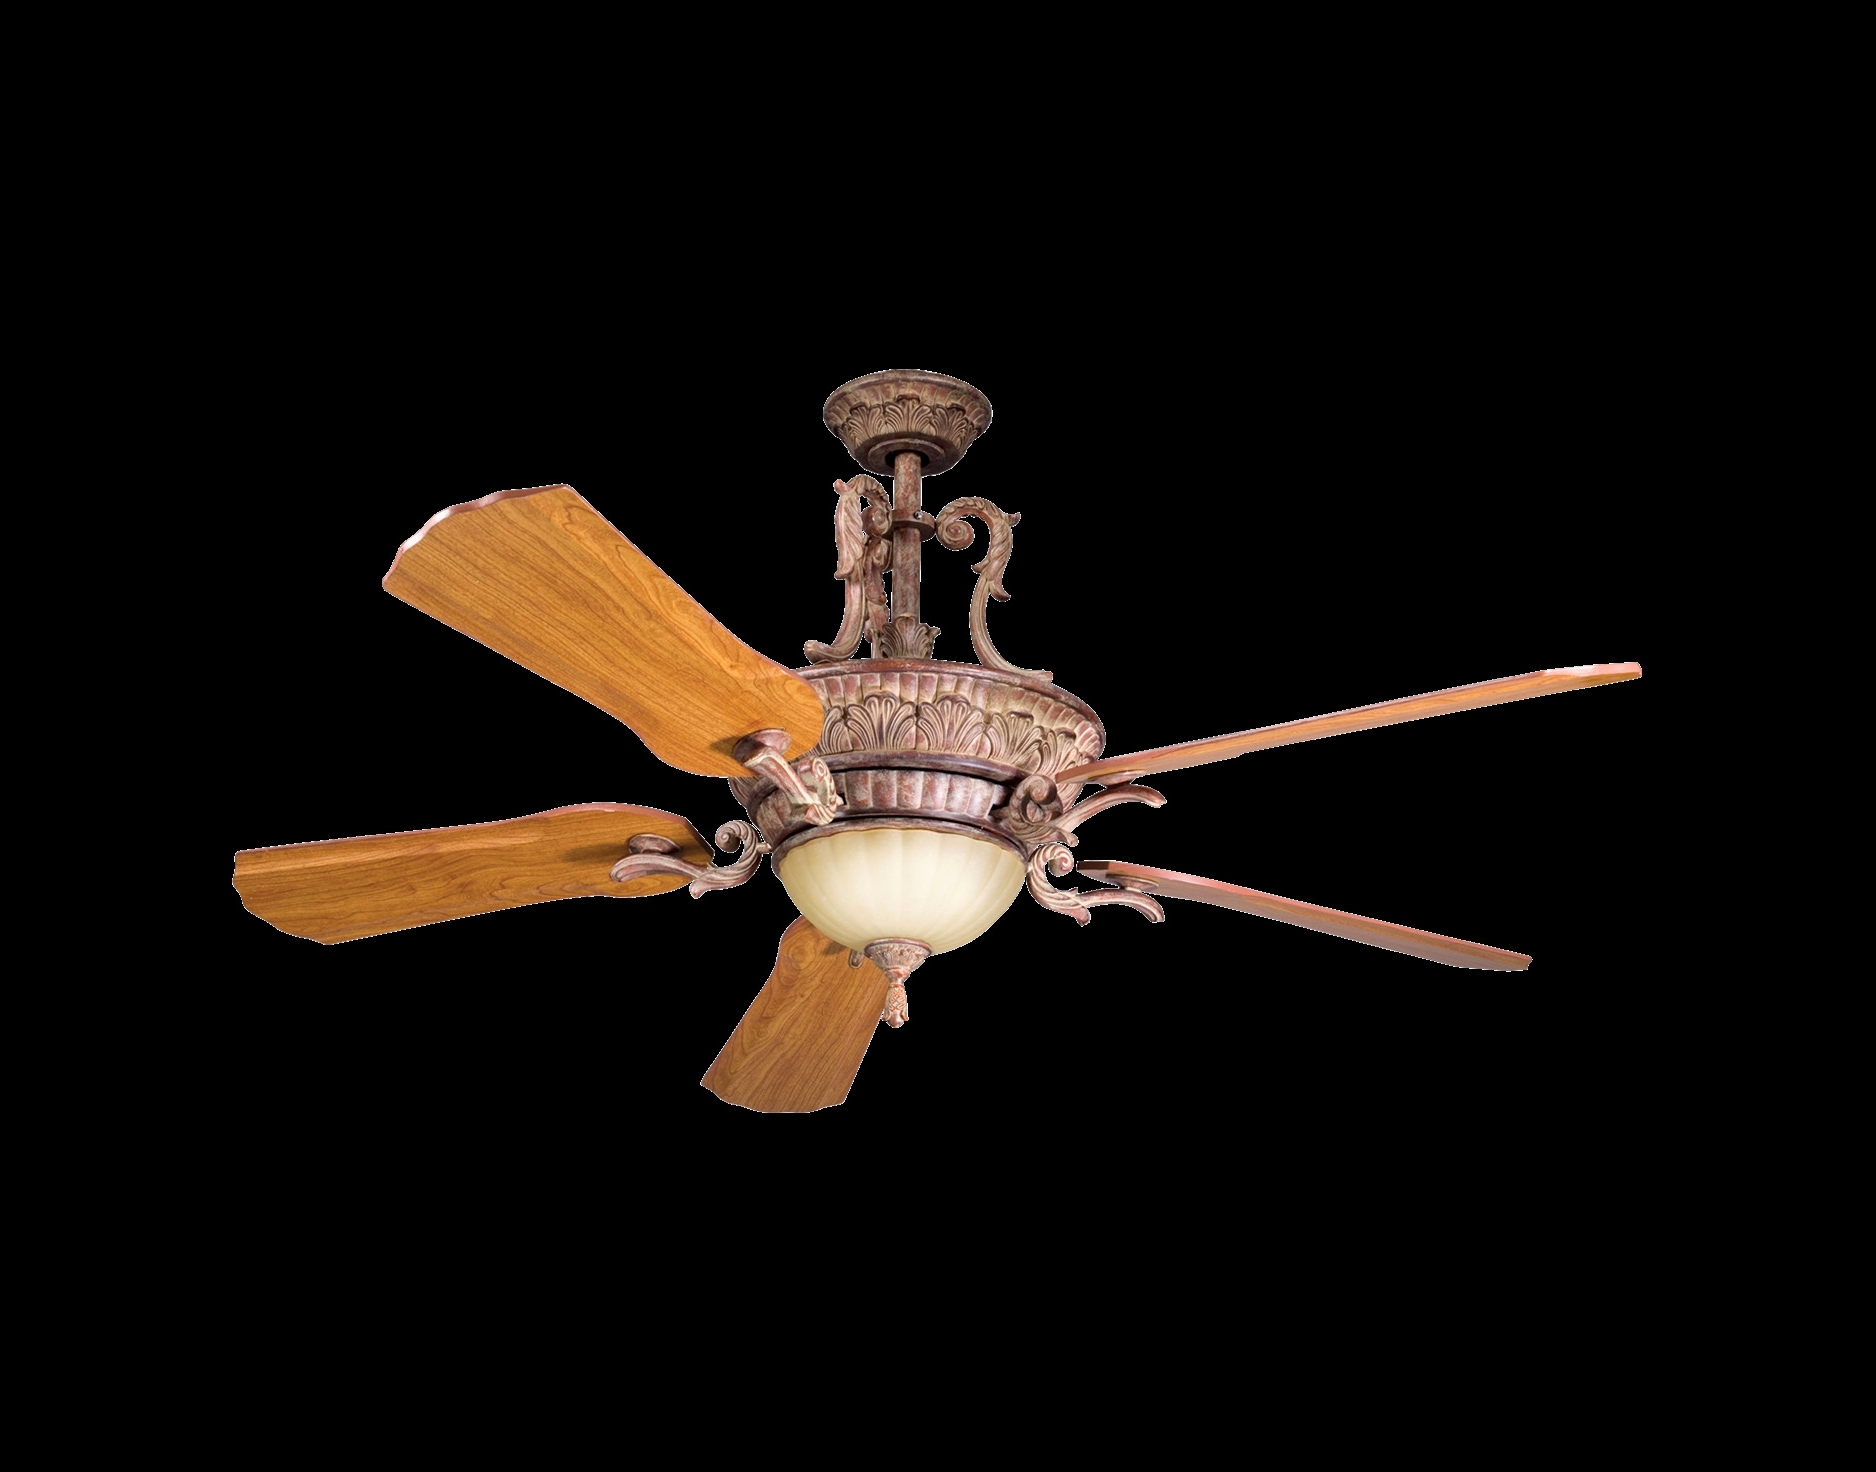 Newest Victorian Outdoor Ceiling Fans In Outdoor Ceiling Fan With Light Awesome Victorian Ceiling Fans Luxury (View 10 of 20)